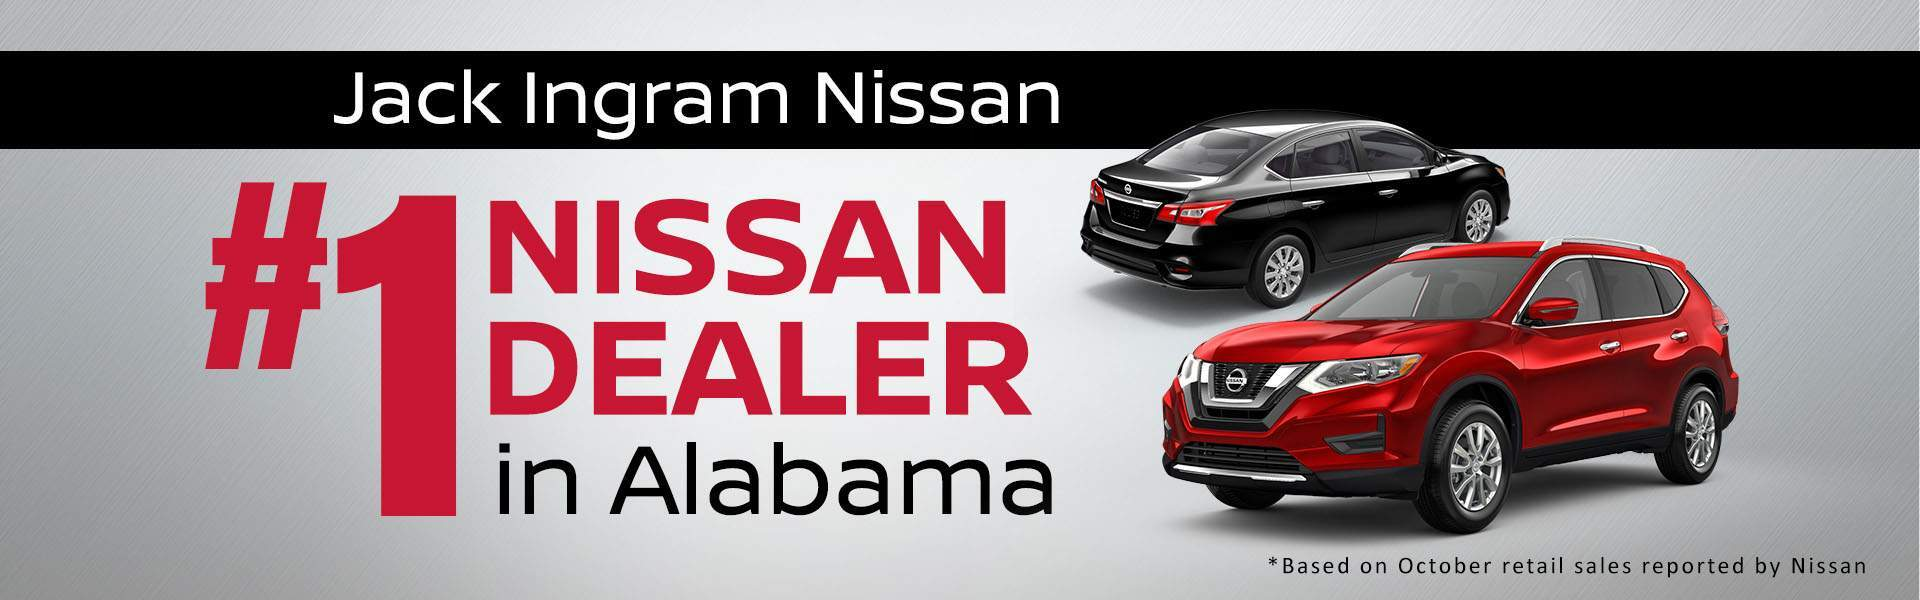 1 nissan dealer in alabama